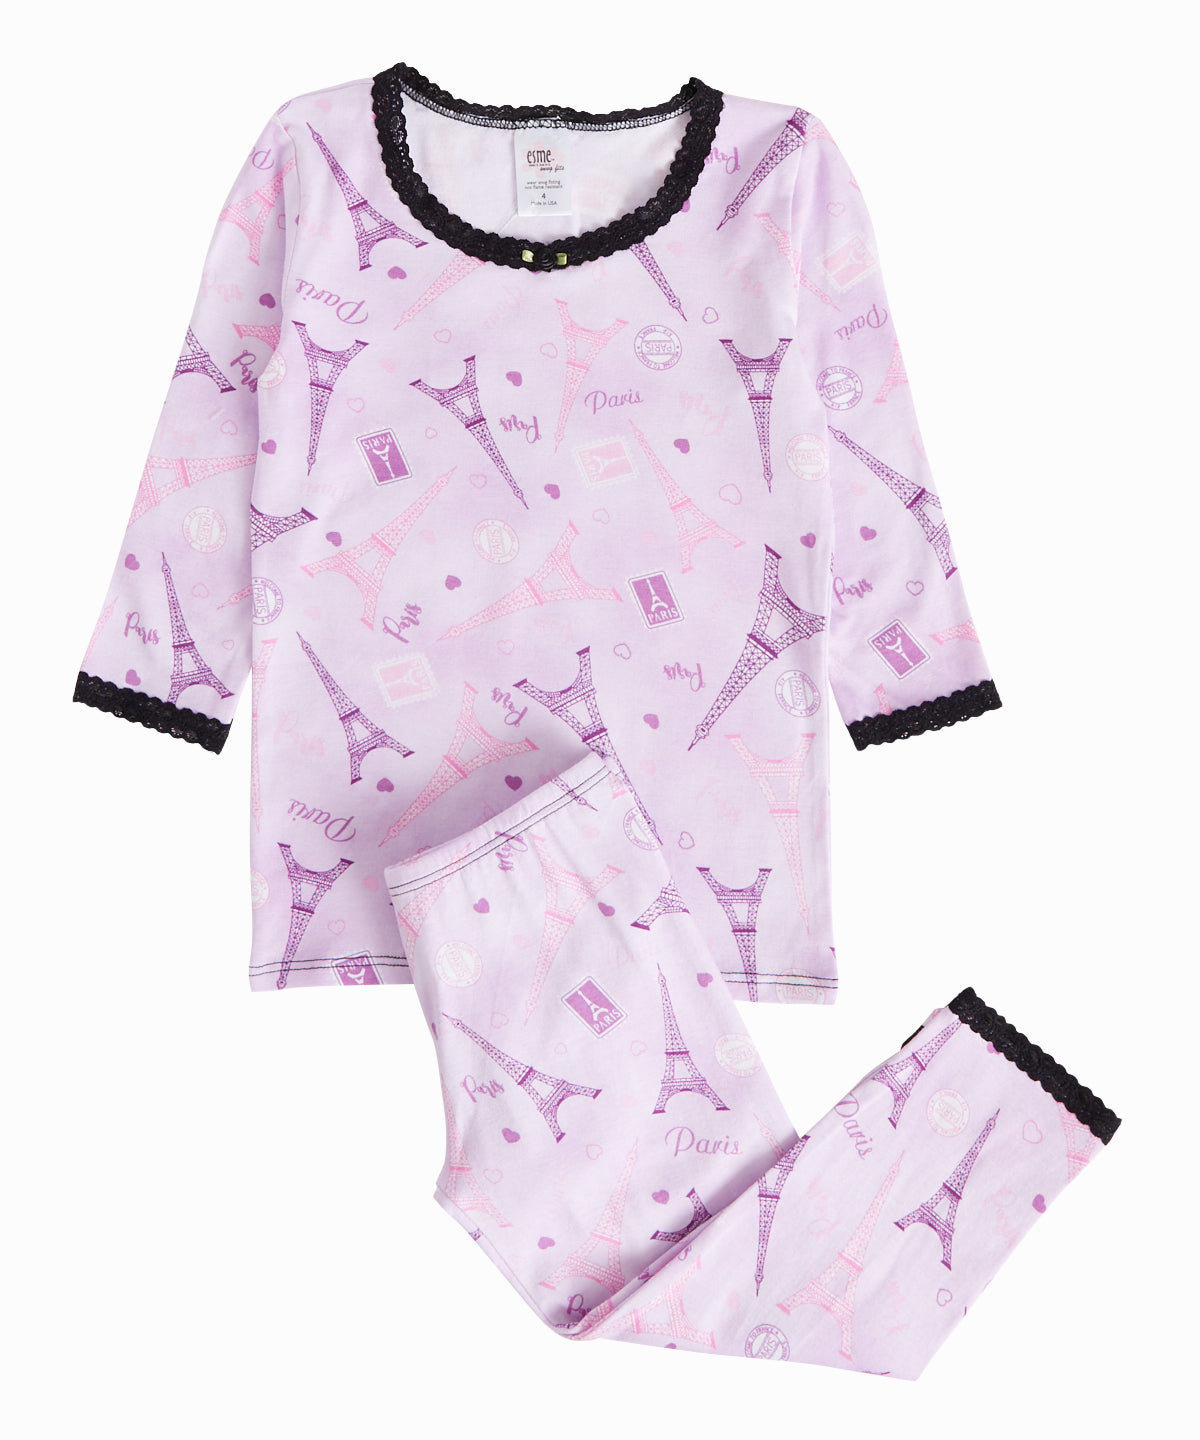 Paris Pajama Set